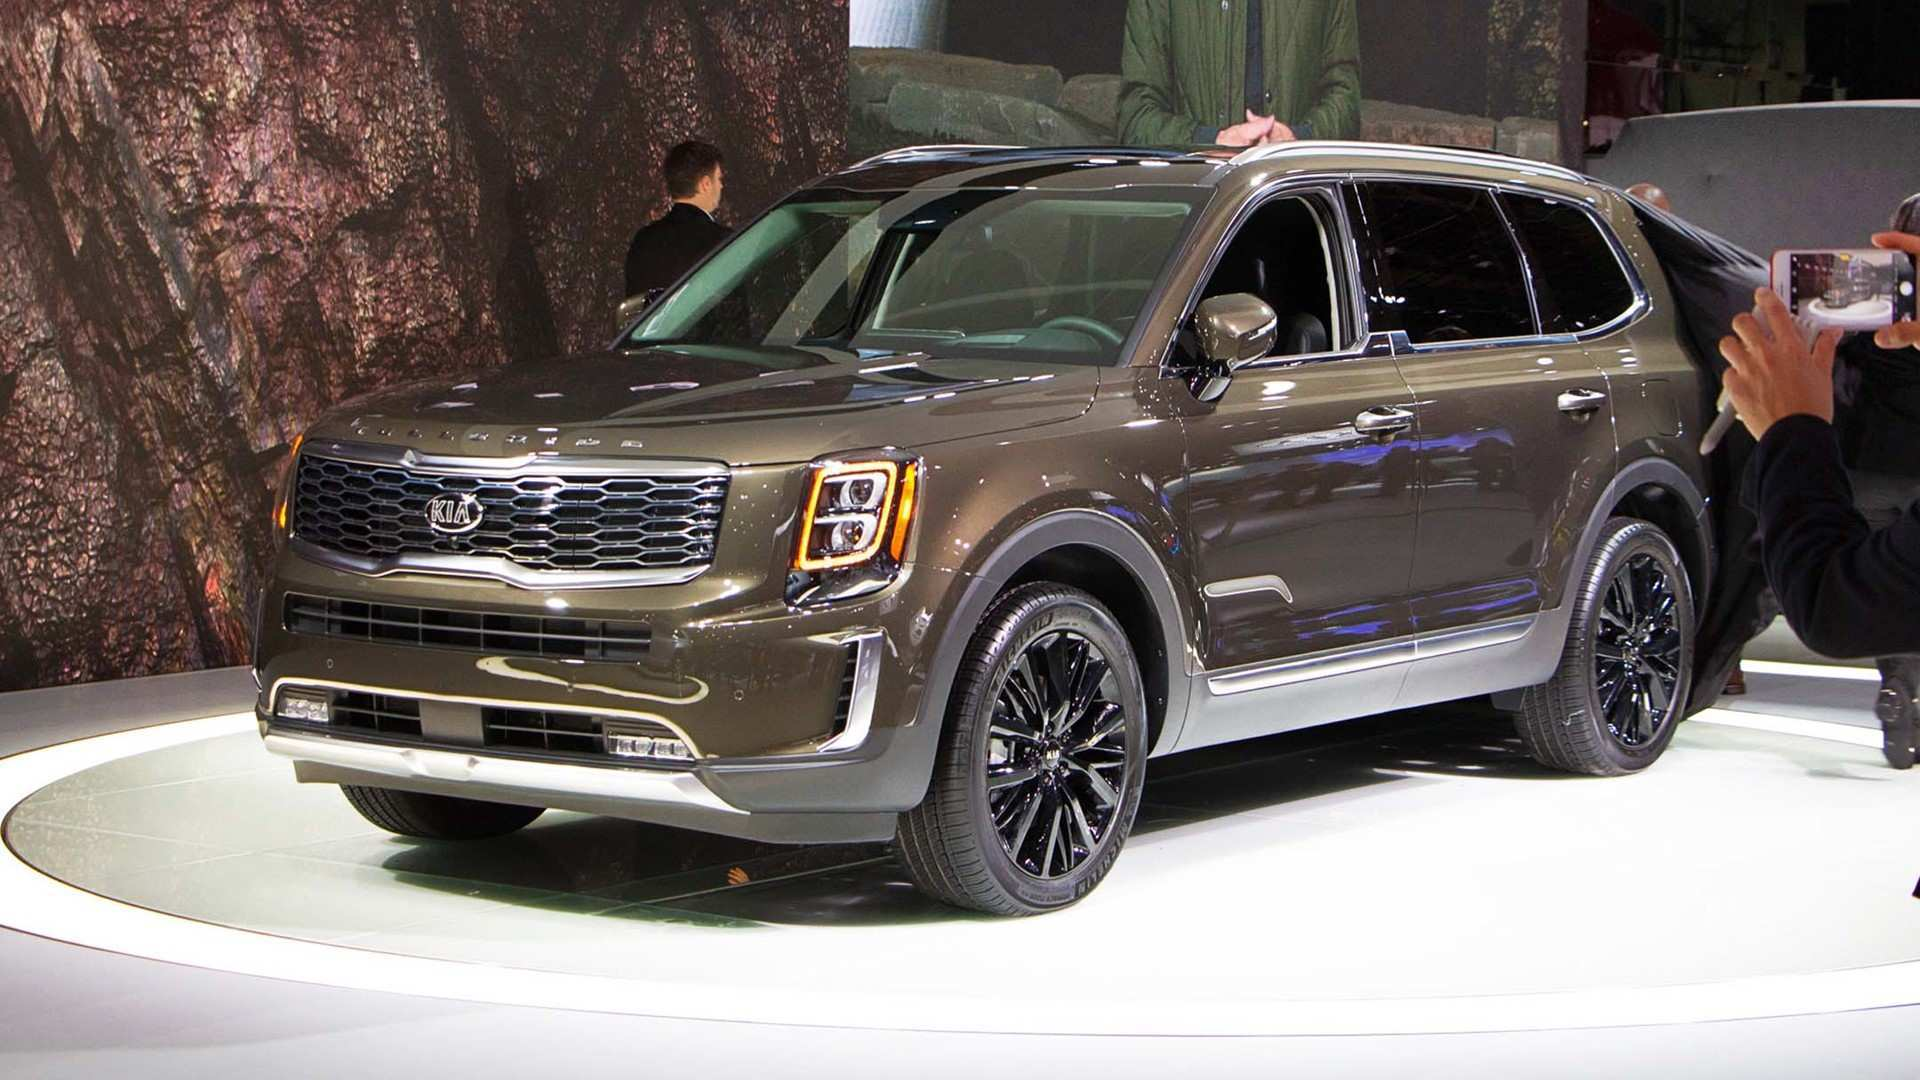 62 All New How Much Is The 2020 Kia Telluride Spesification for How Much Is The 2020 Kia Telluride